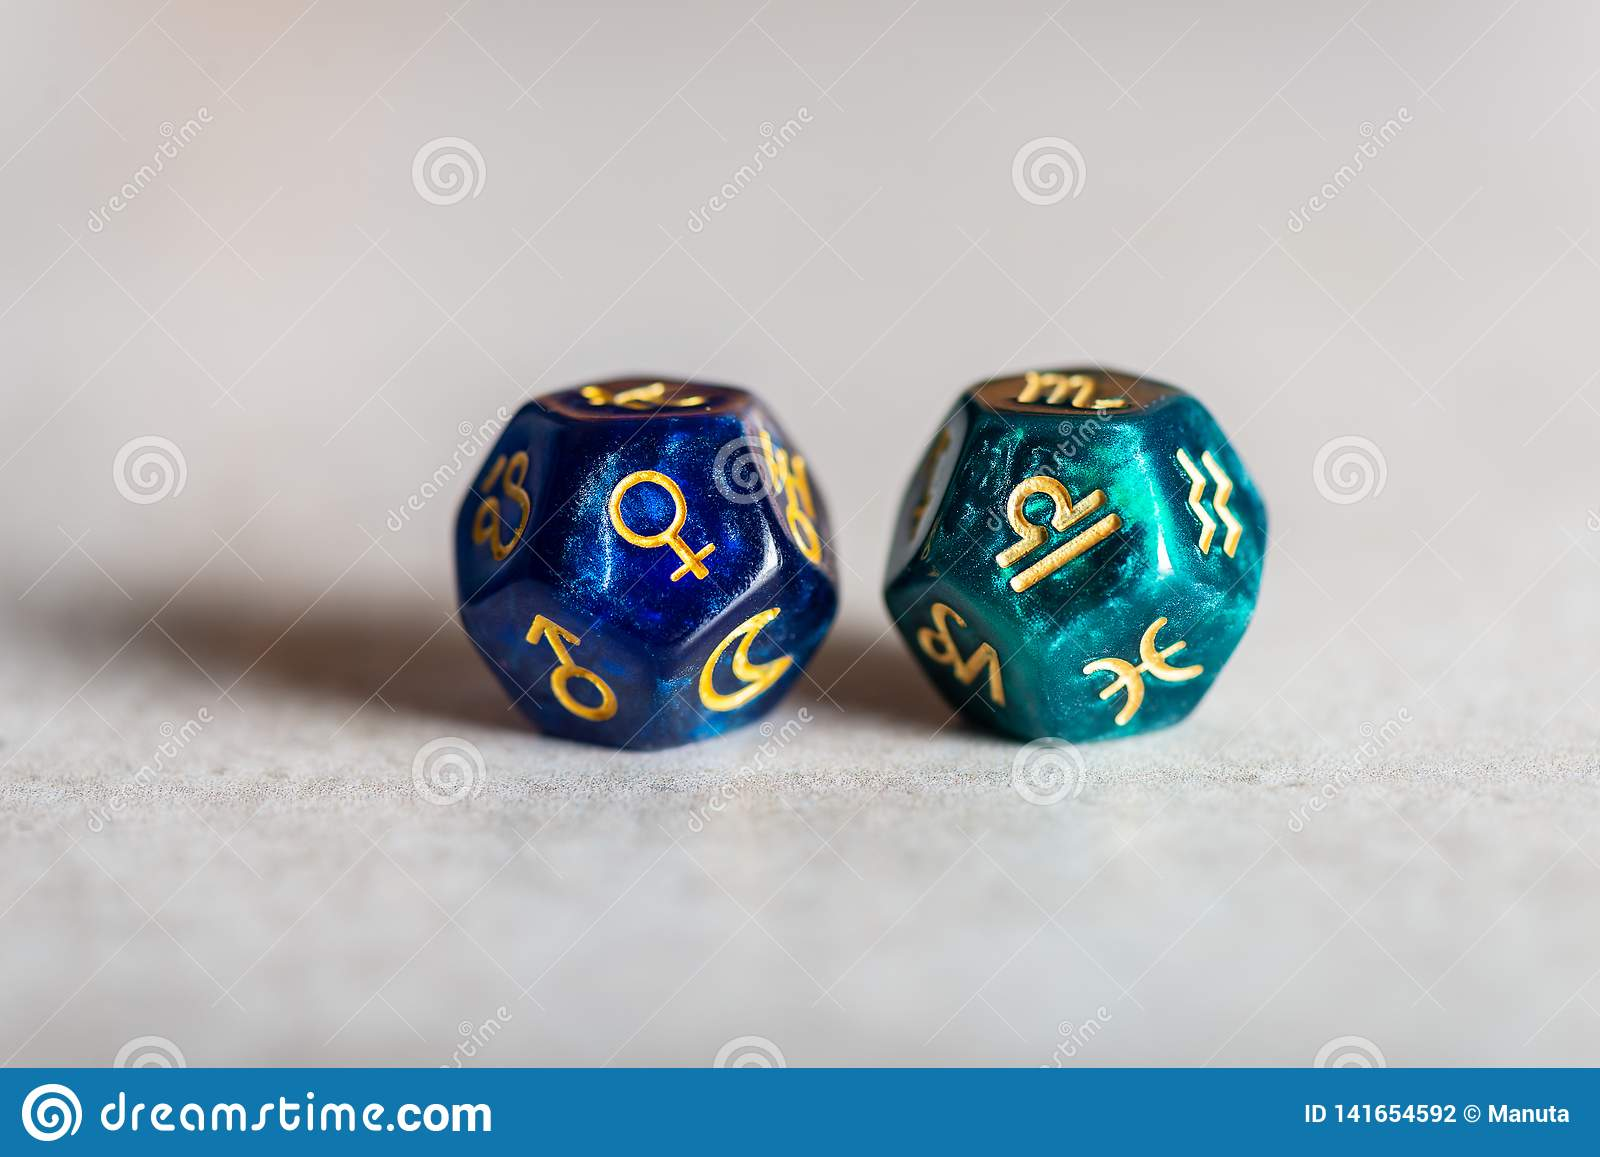 Astrology Dice with zodiac symbol of Libra and its ruling planet Venus